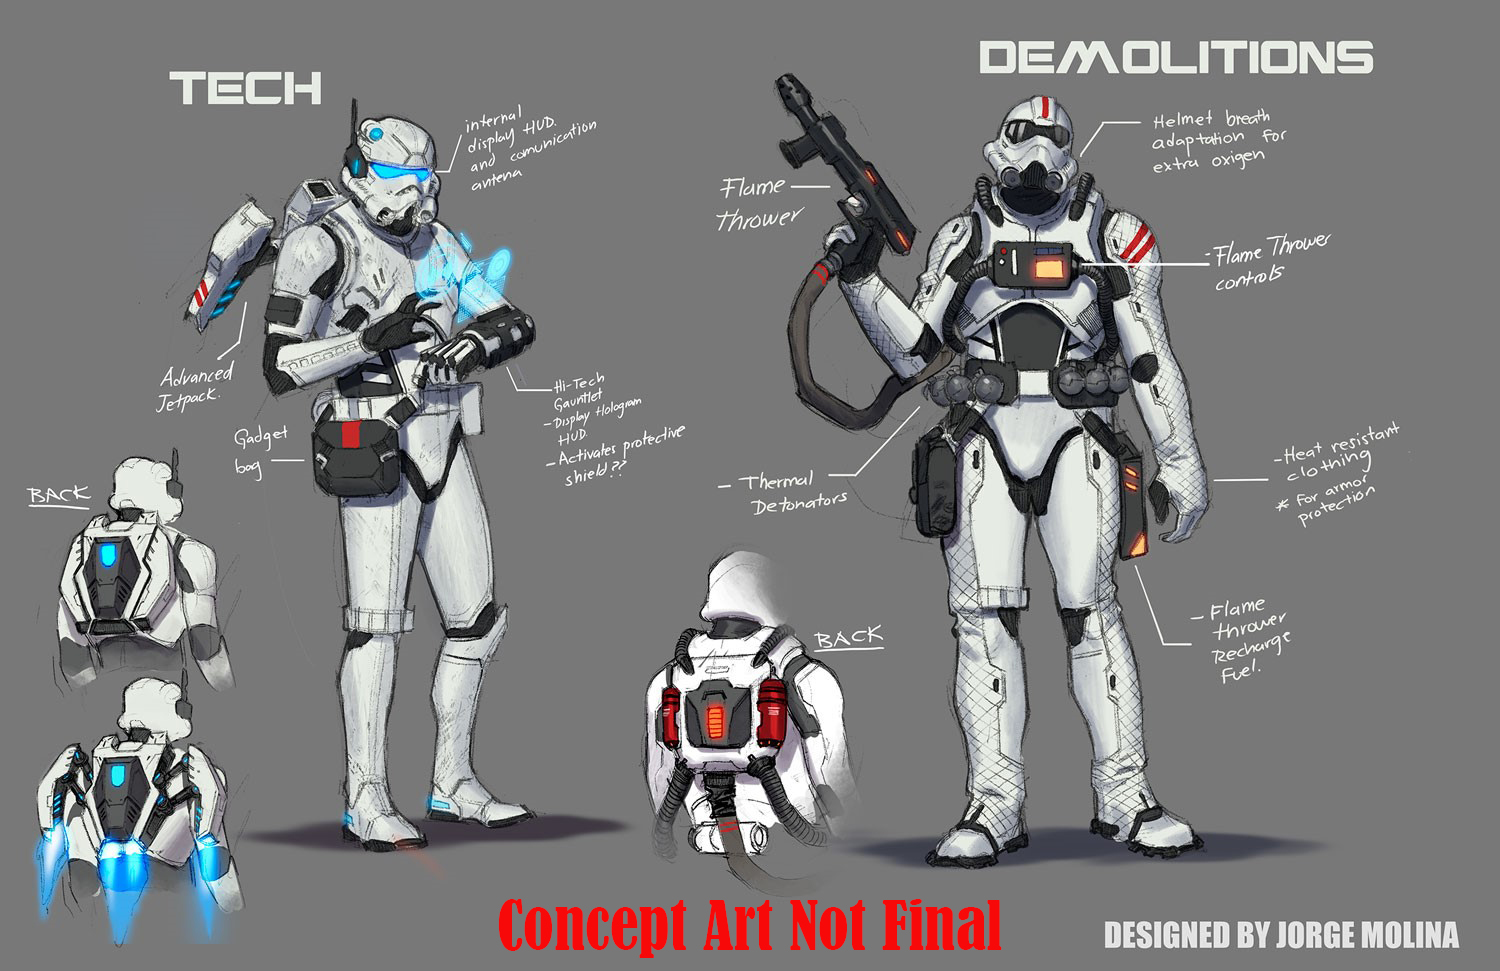 How are Death Troopers more elite than Stormtroopers? - Quora